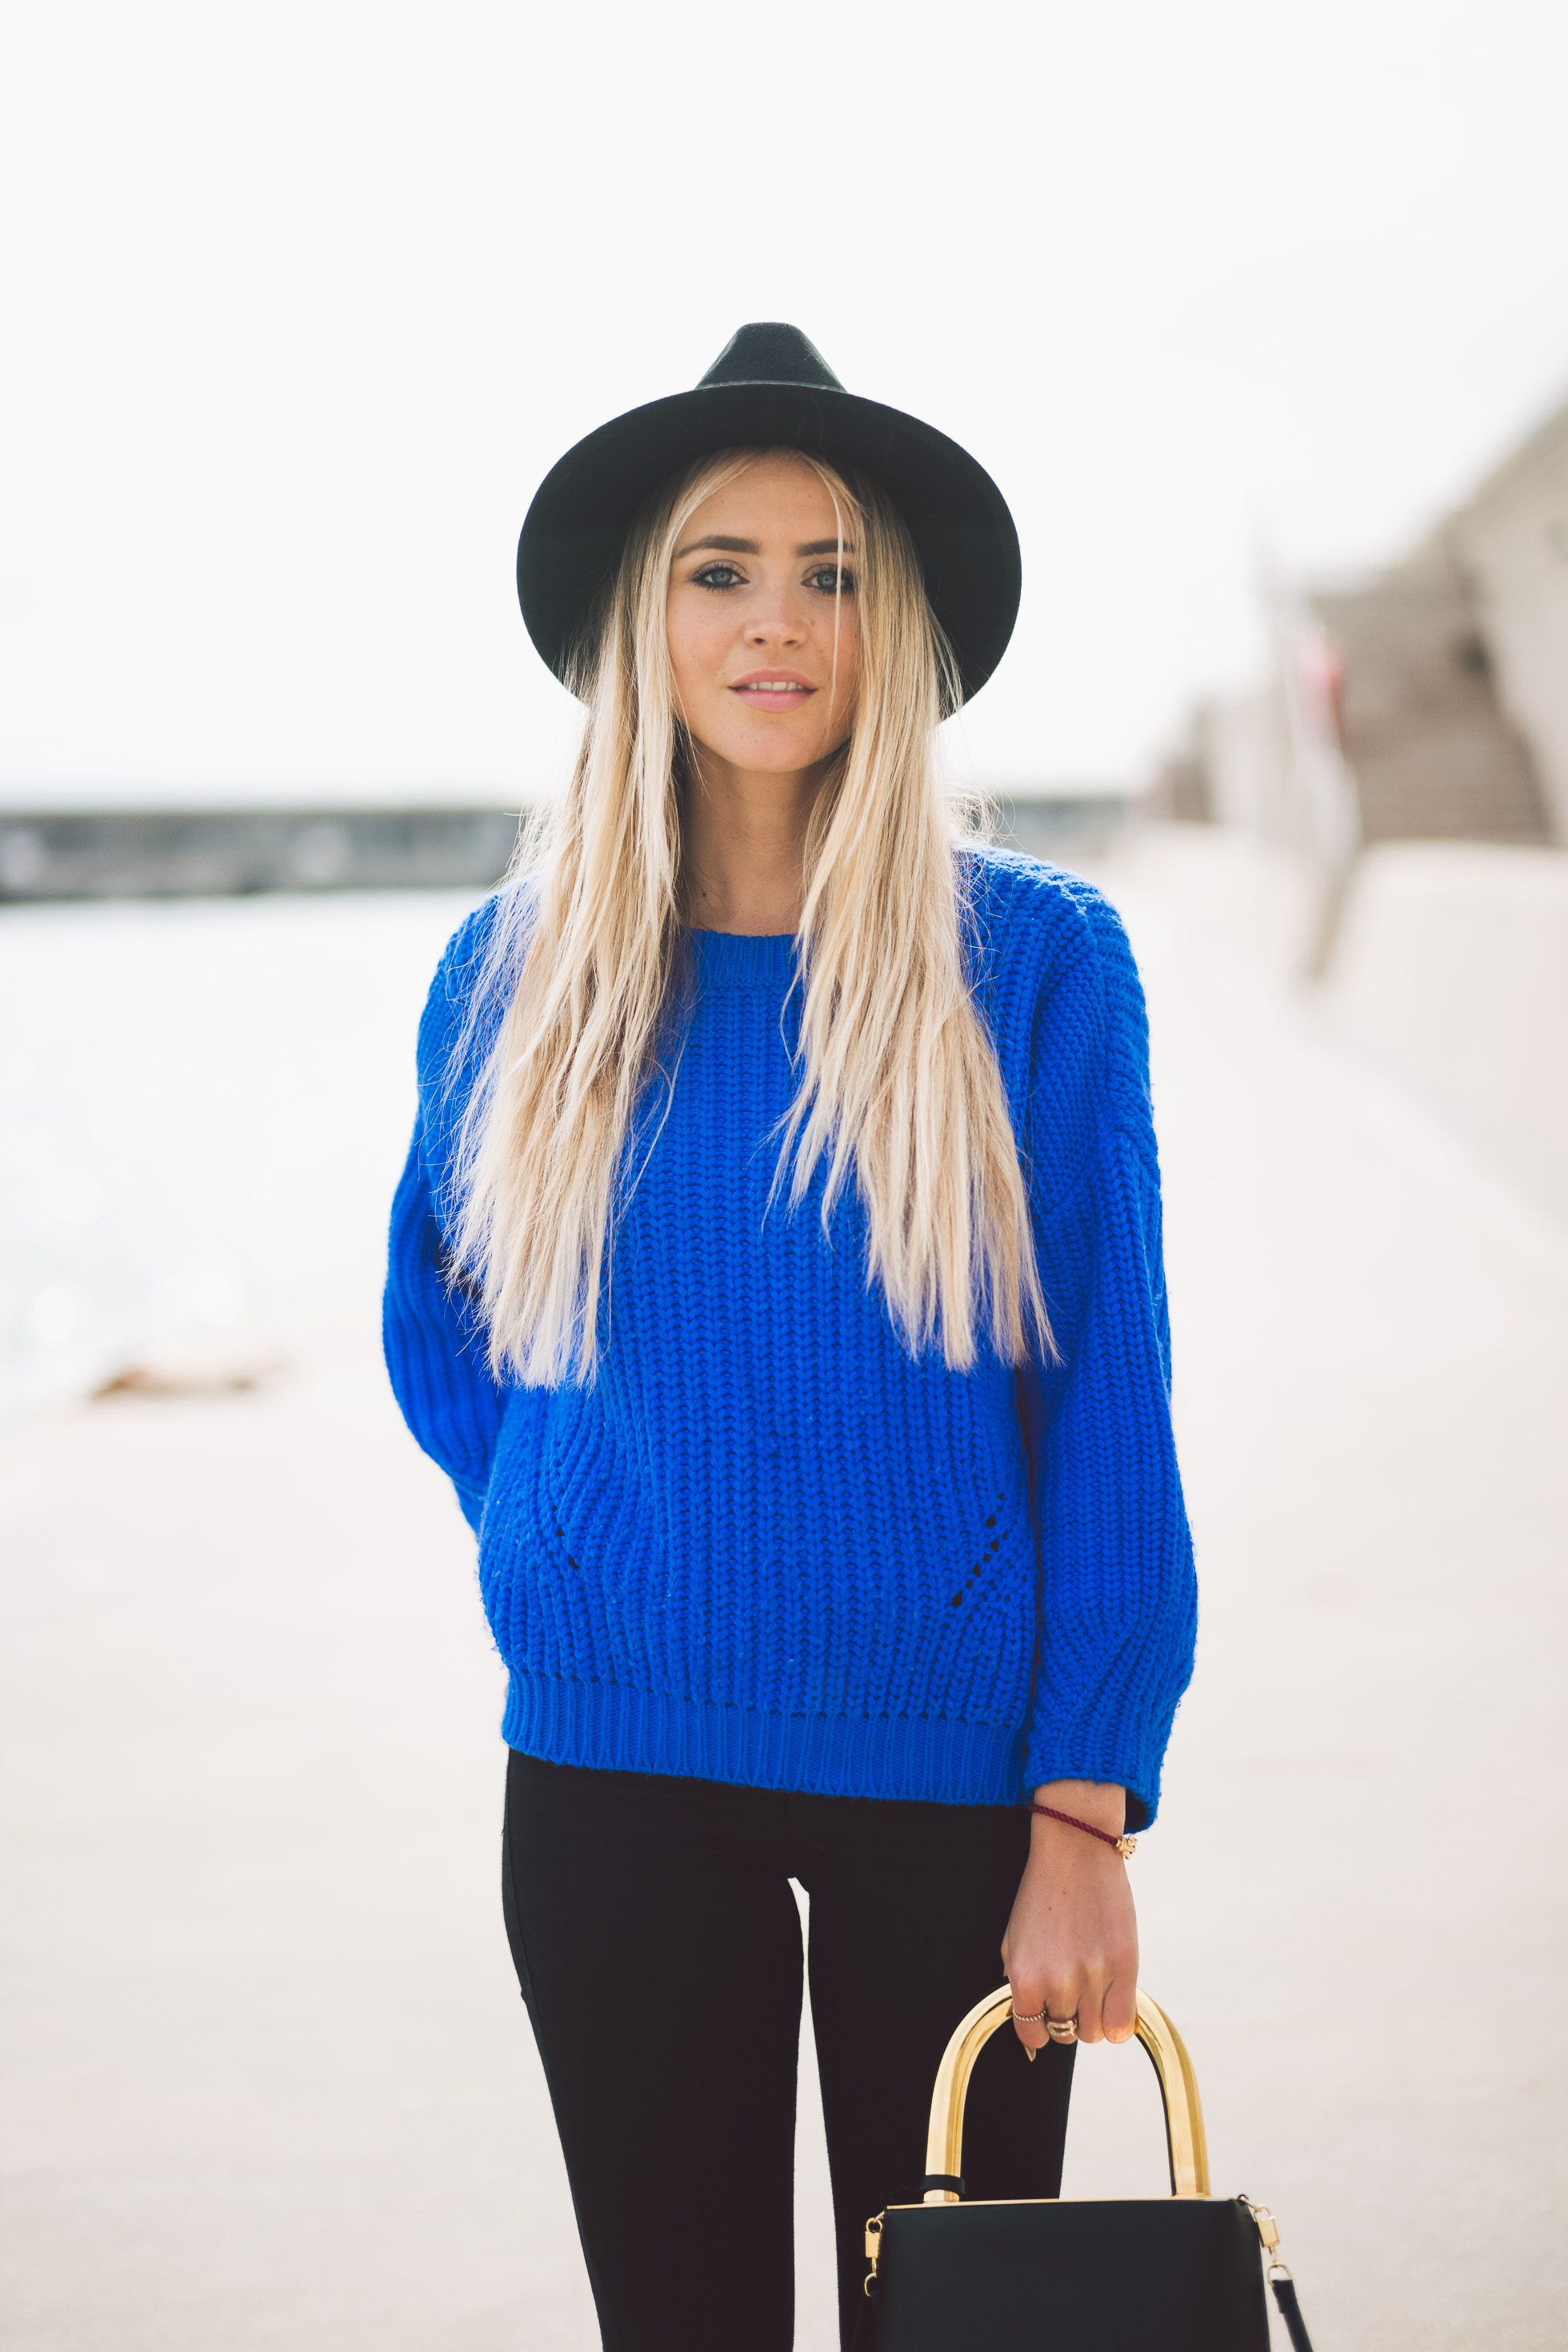 Janni Delér | Boots | Pinterest | Blue sweaters, Winter and Winter ...